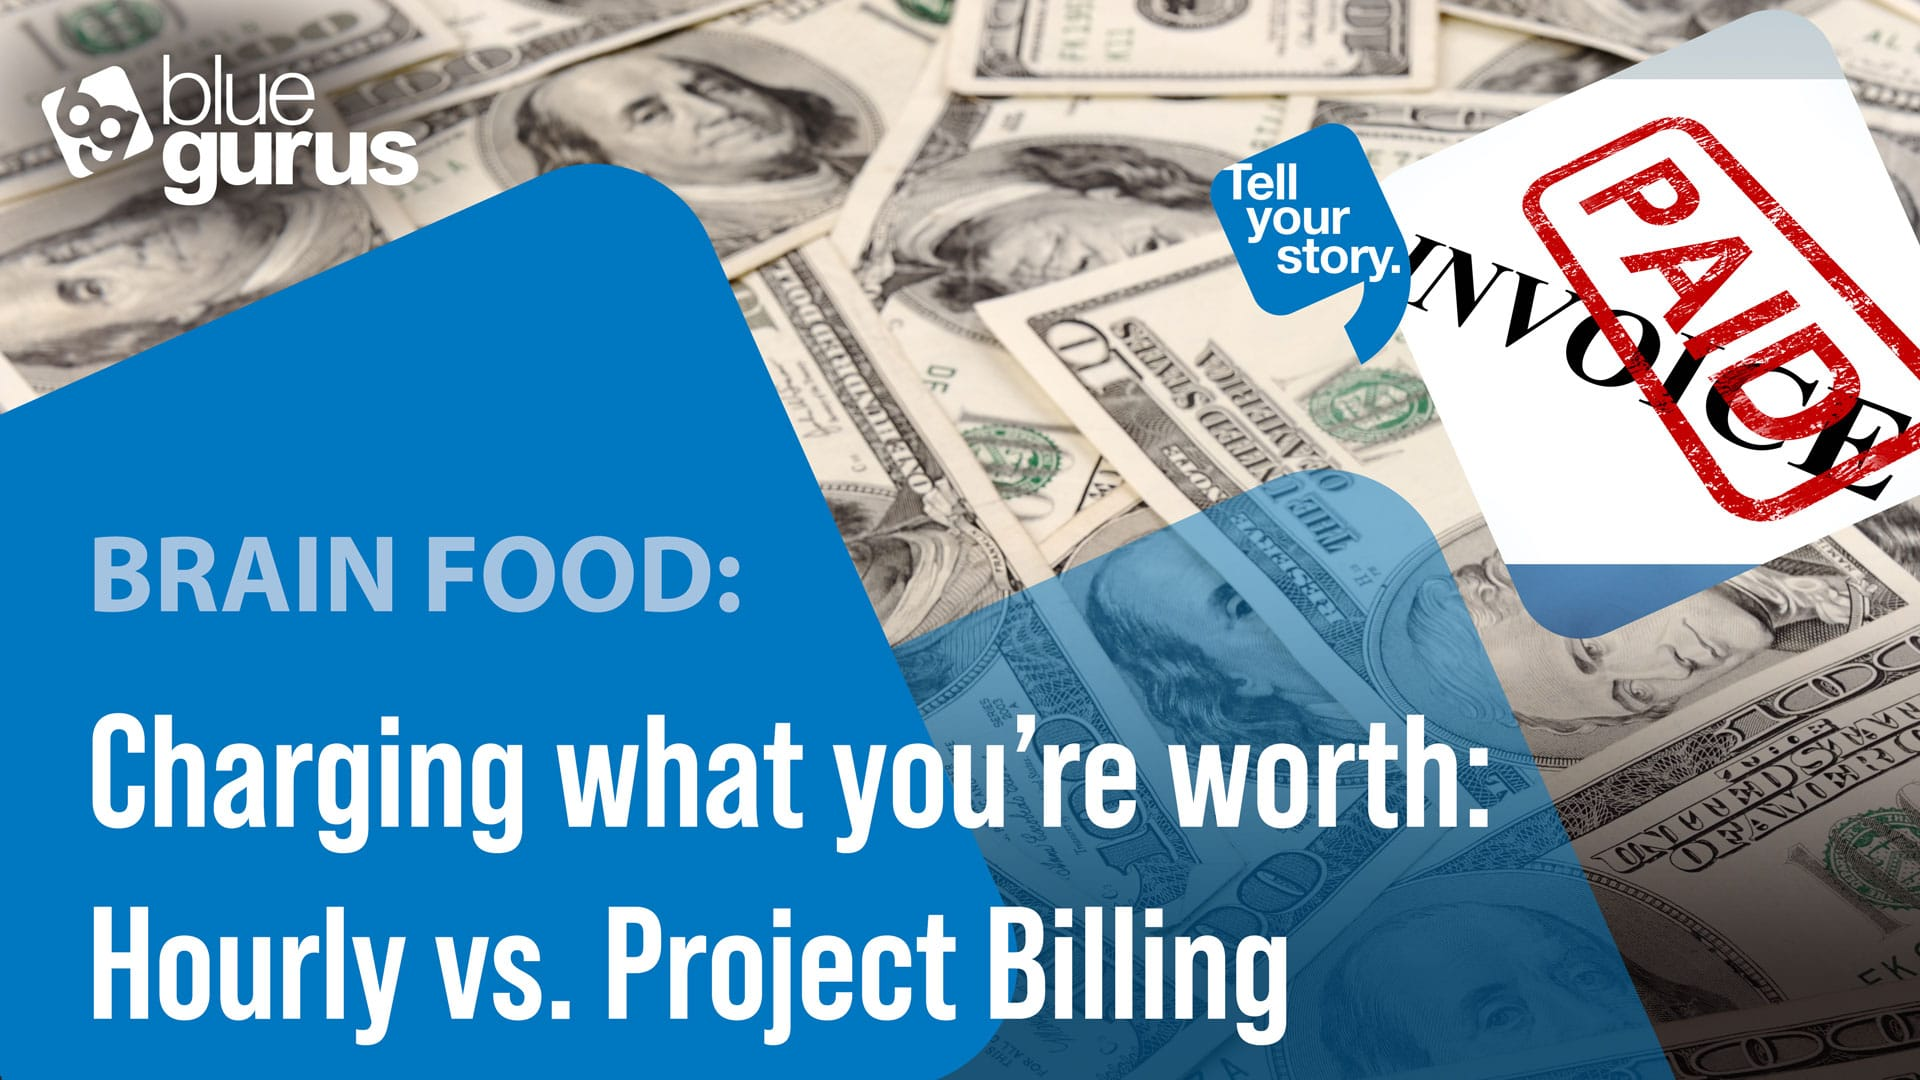 Hourly vs. Project Billing